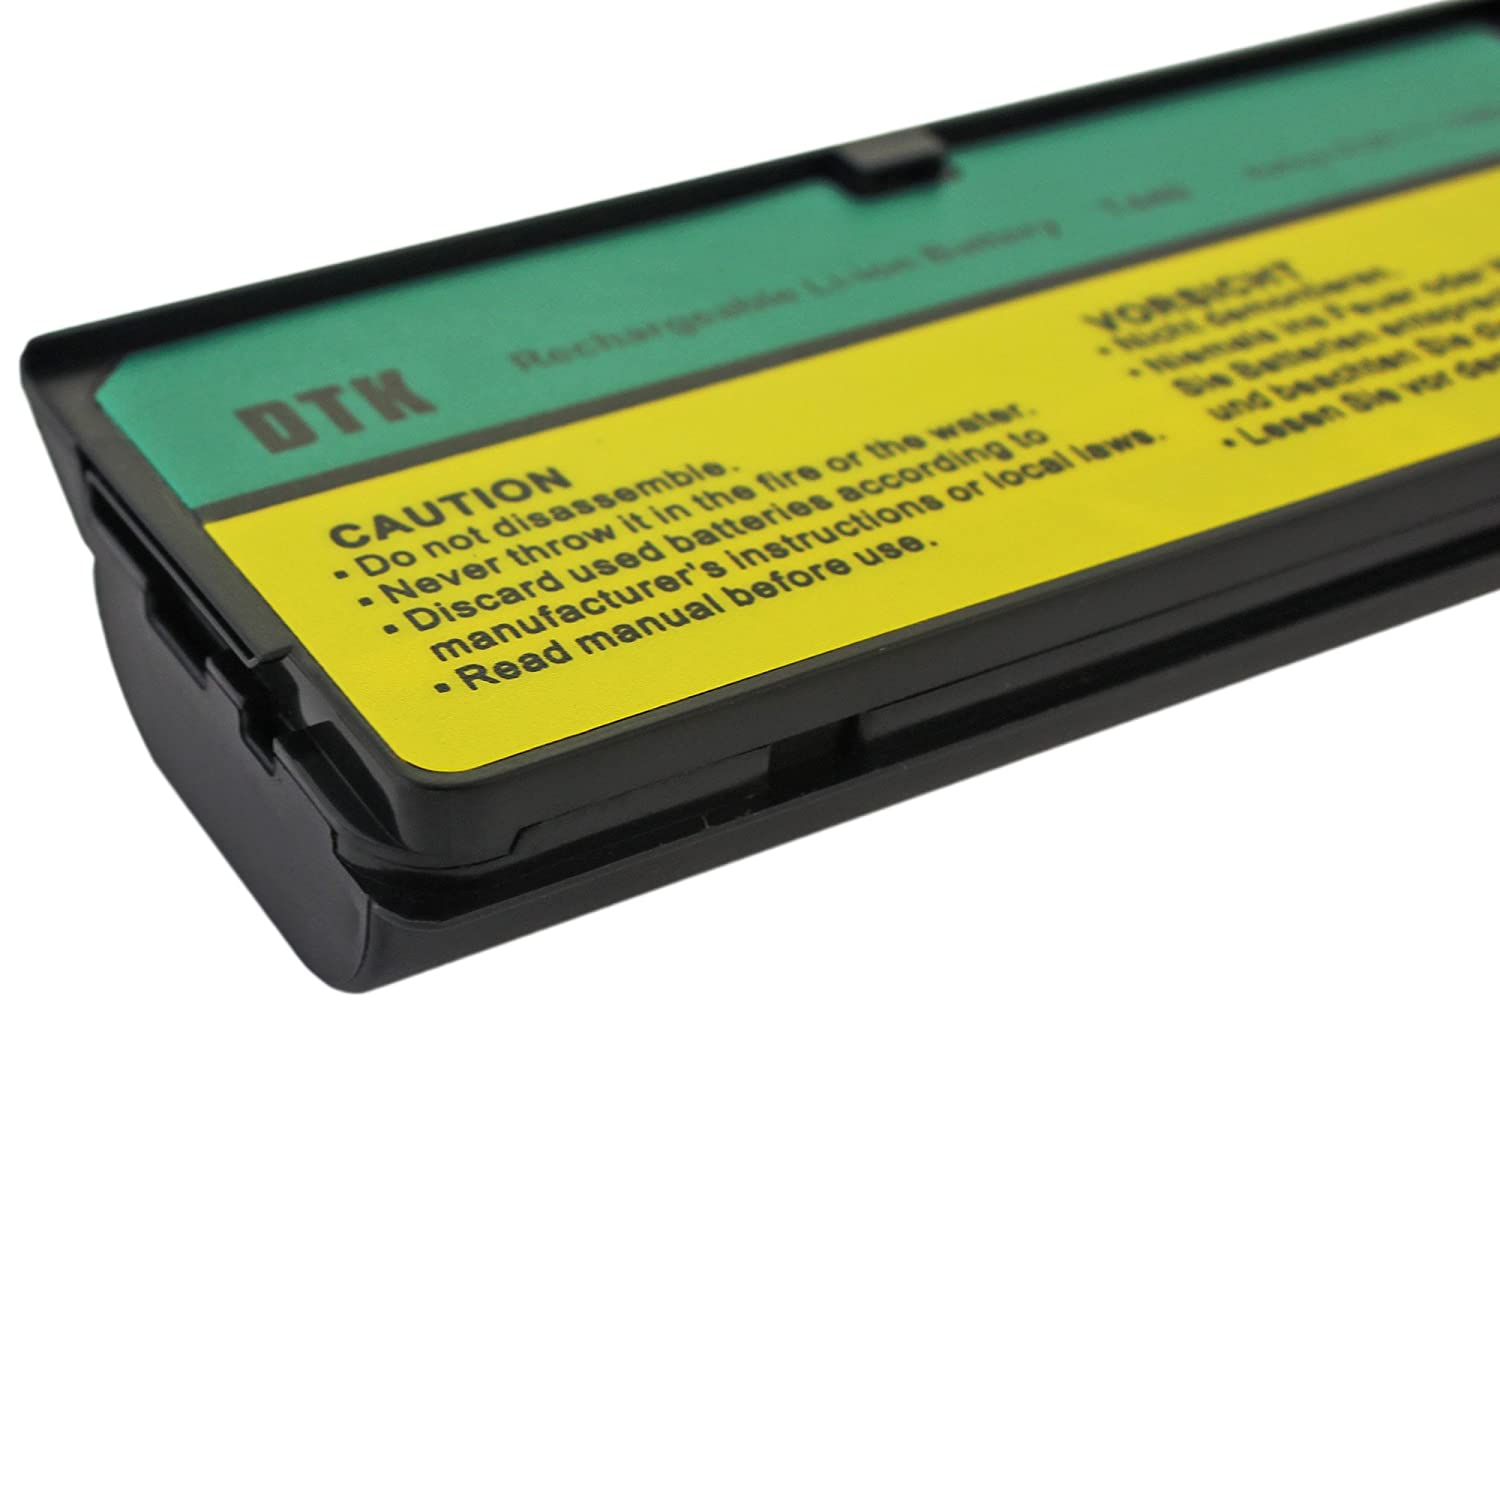 DTK® New Laptop Battery Replacement for Lenovo Ibm Thinkpad L450 L460 T440s  T440 T450 T450s T460 T460P T550 T560 P50S W550s X240 X250 X260 series